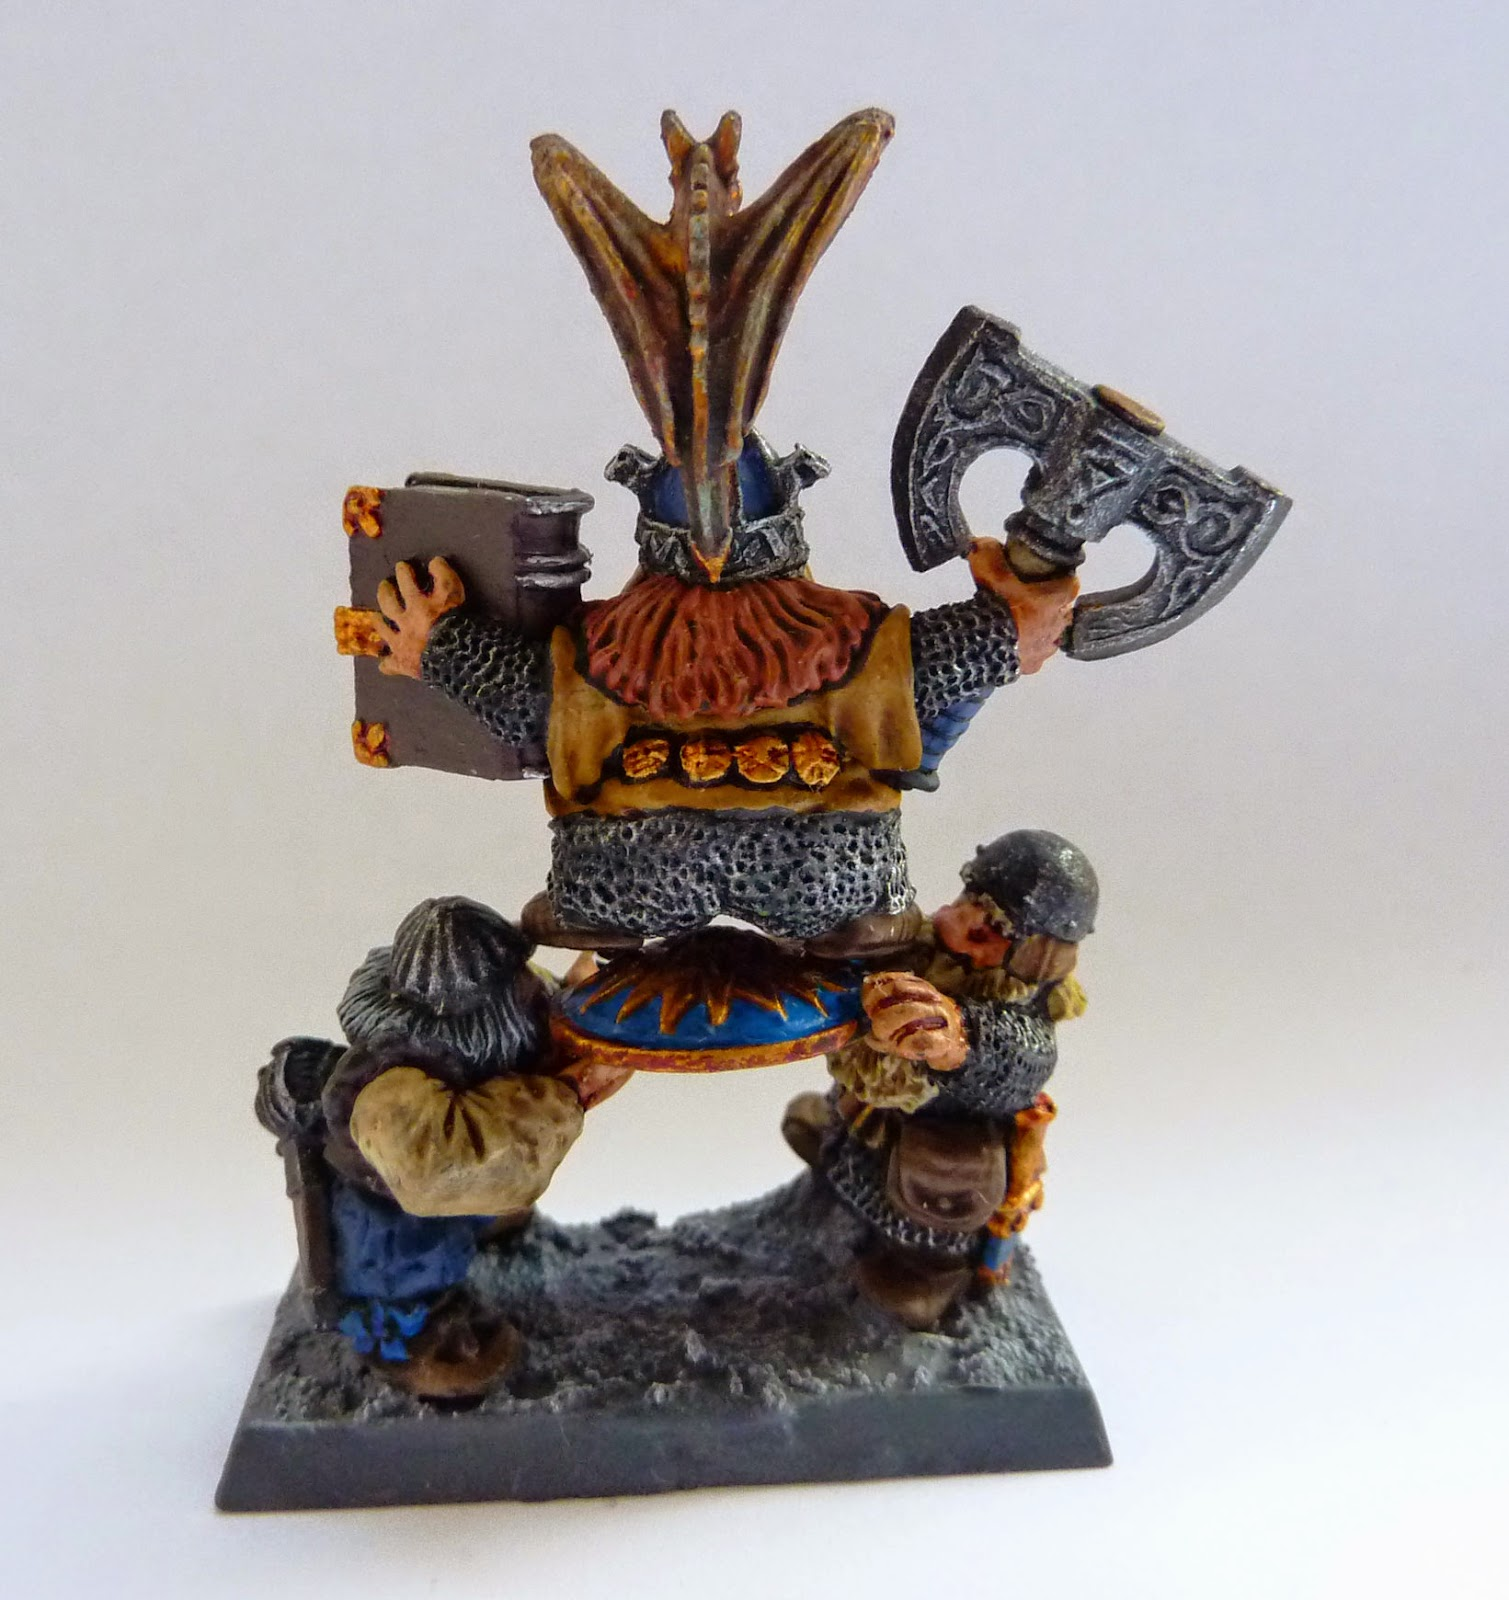 A Dwarf Shieldbearer conversion for Warhammer Fantasy Battle.